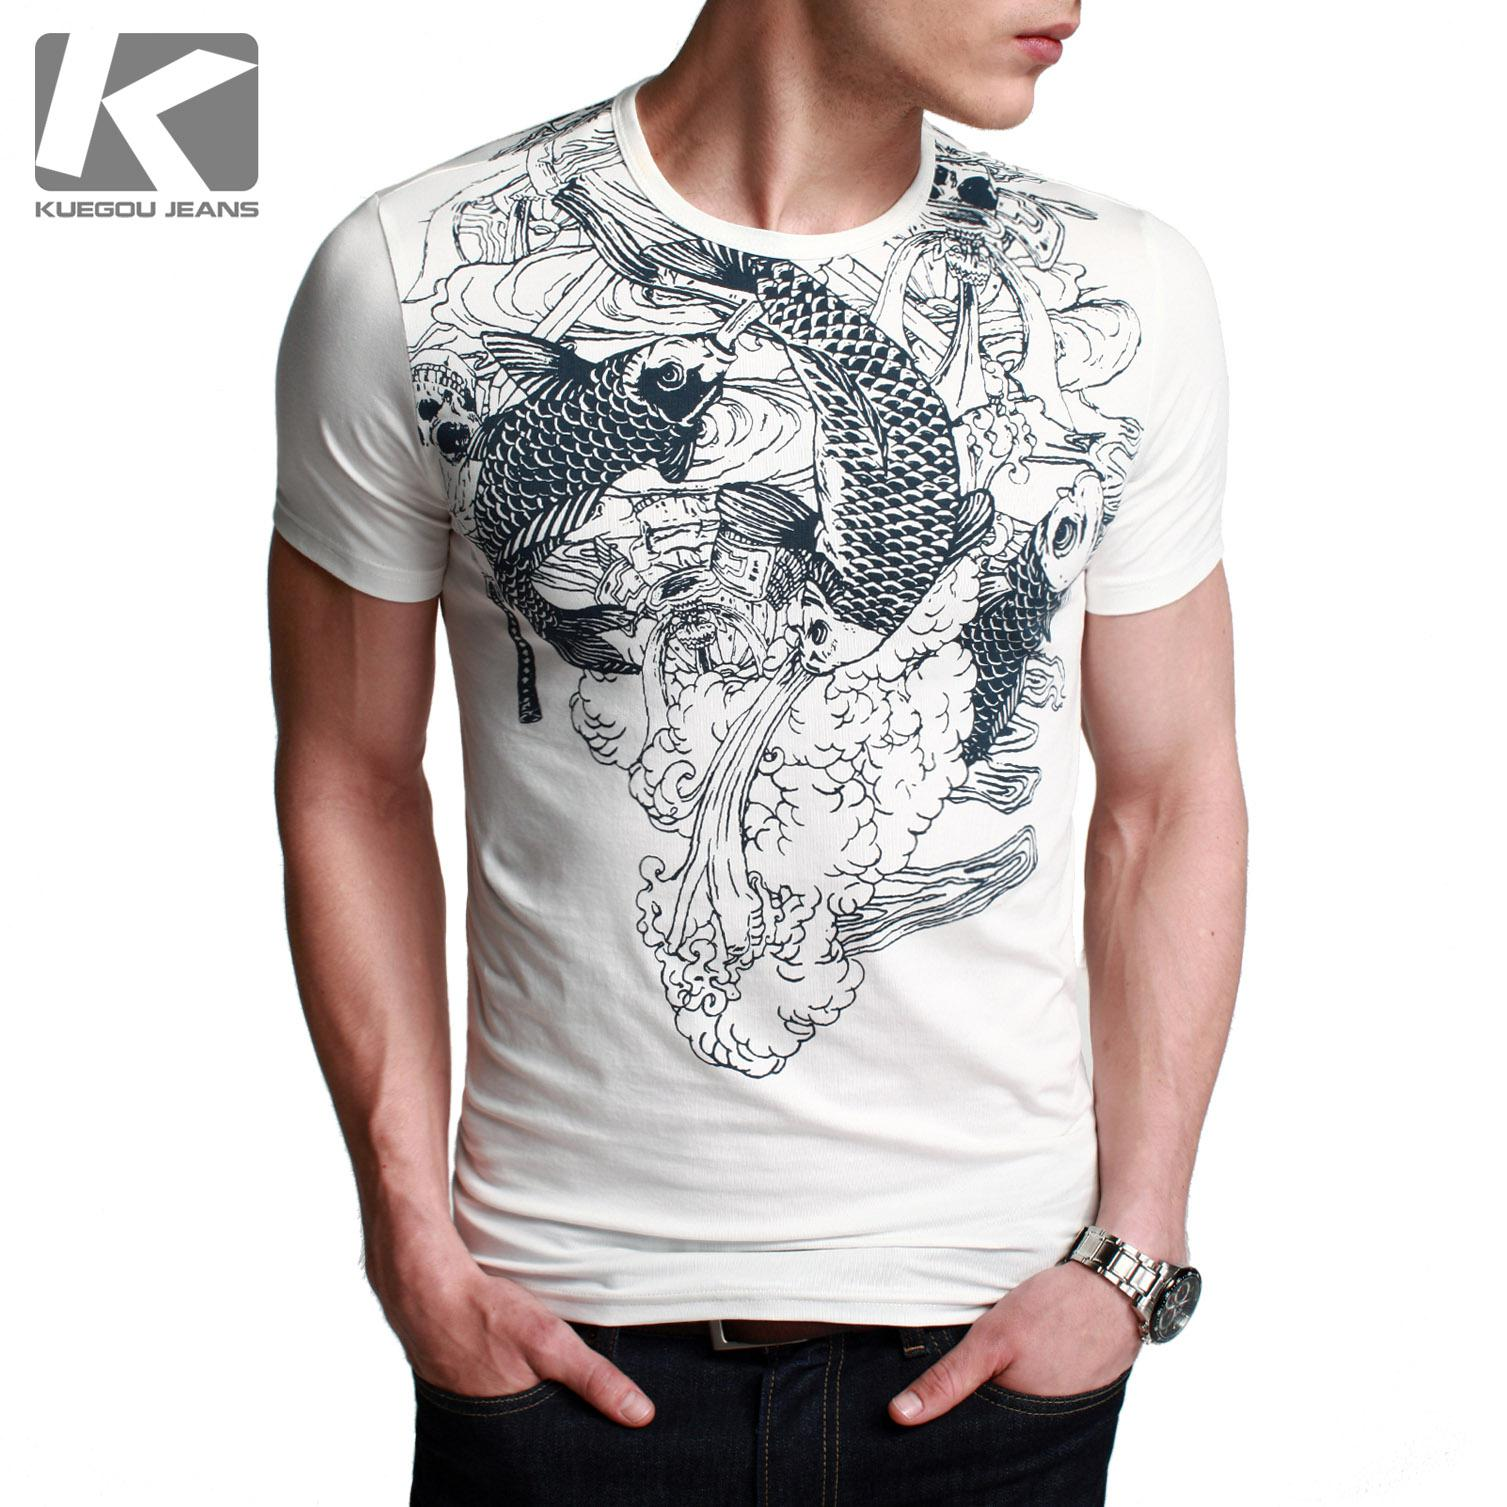 Share Cool Clothes Men's Short Sleeve Tattoos New Big Splash T ...